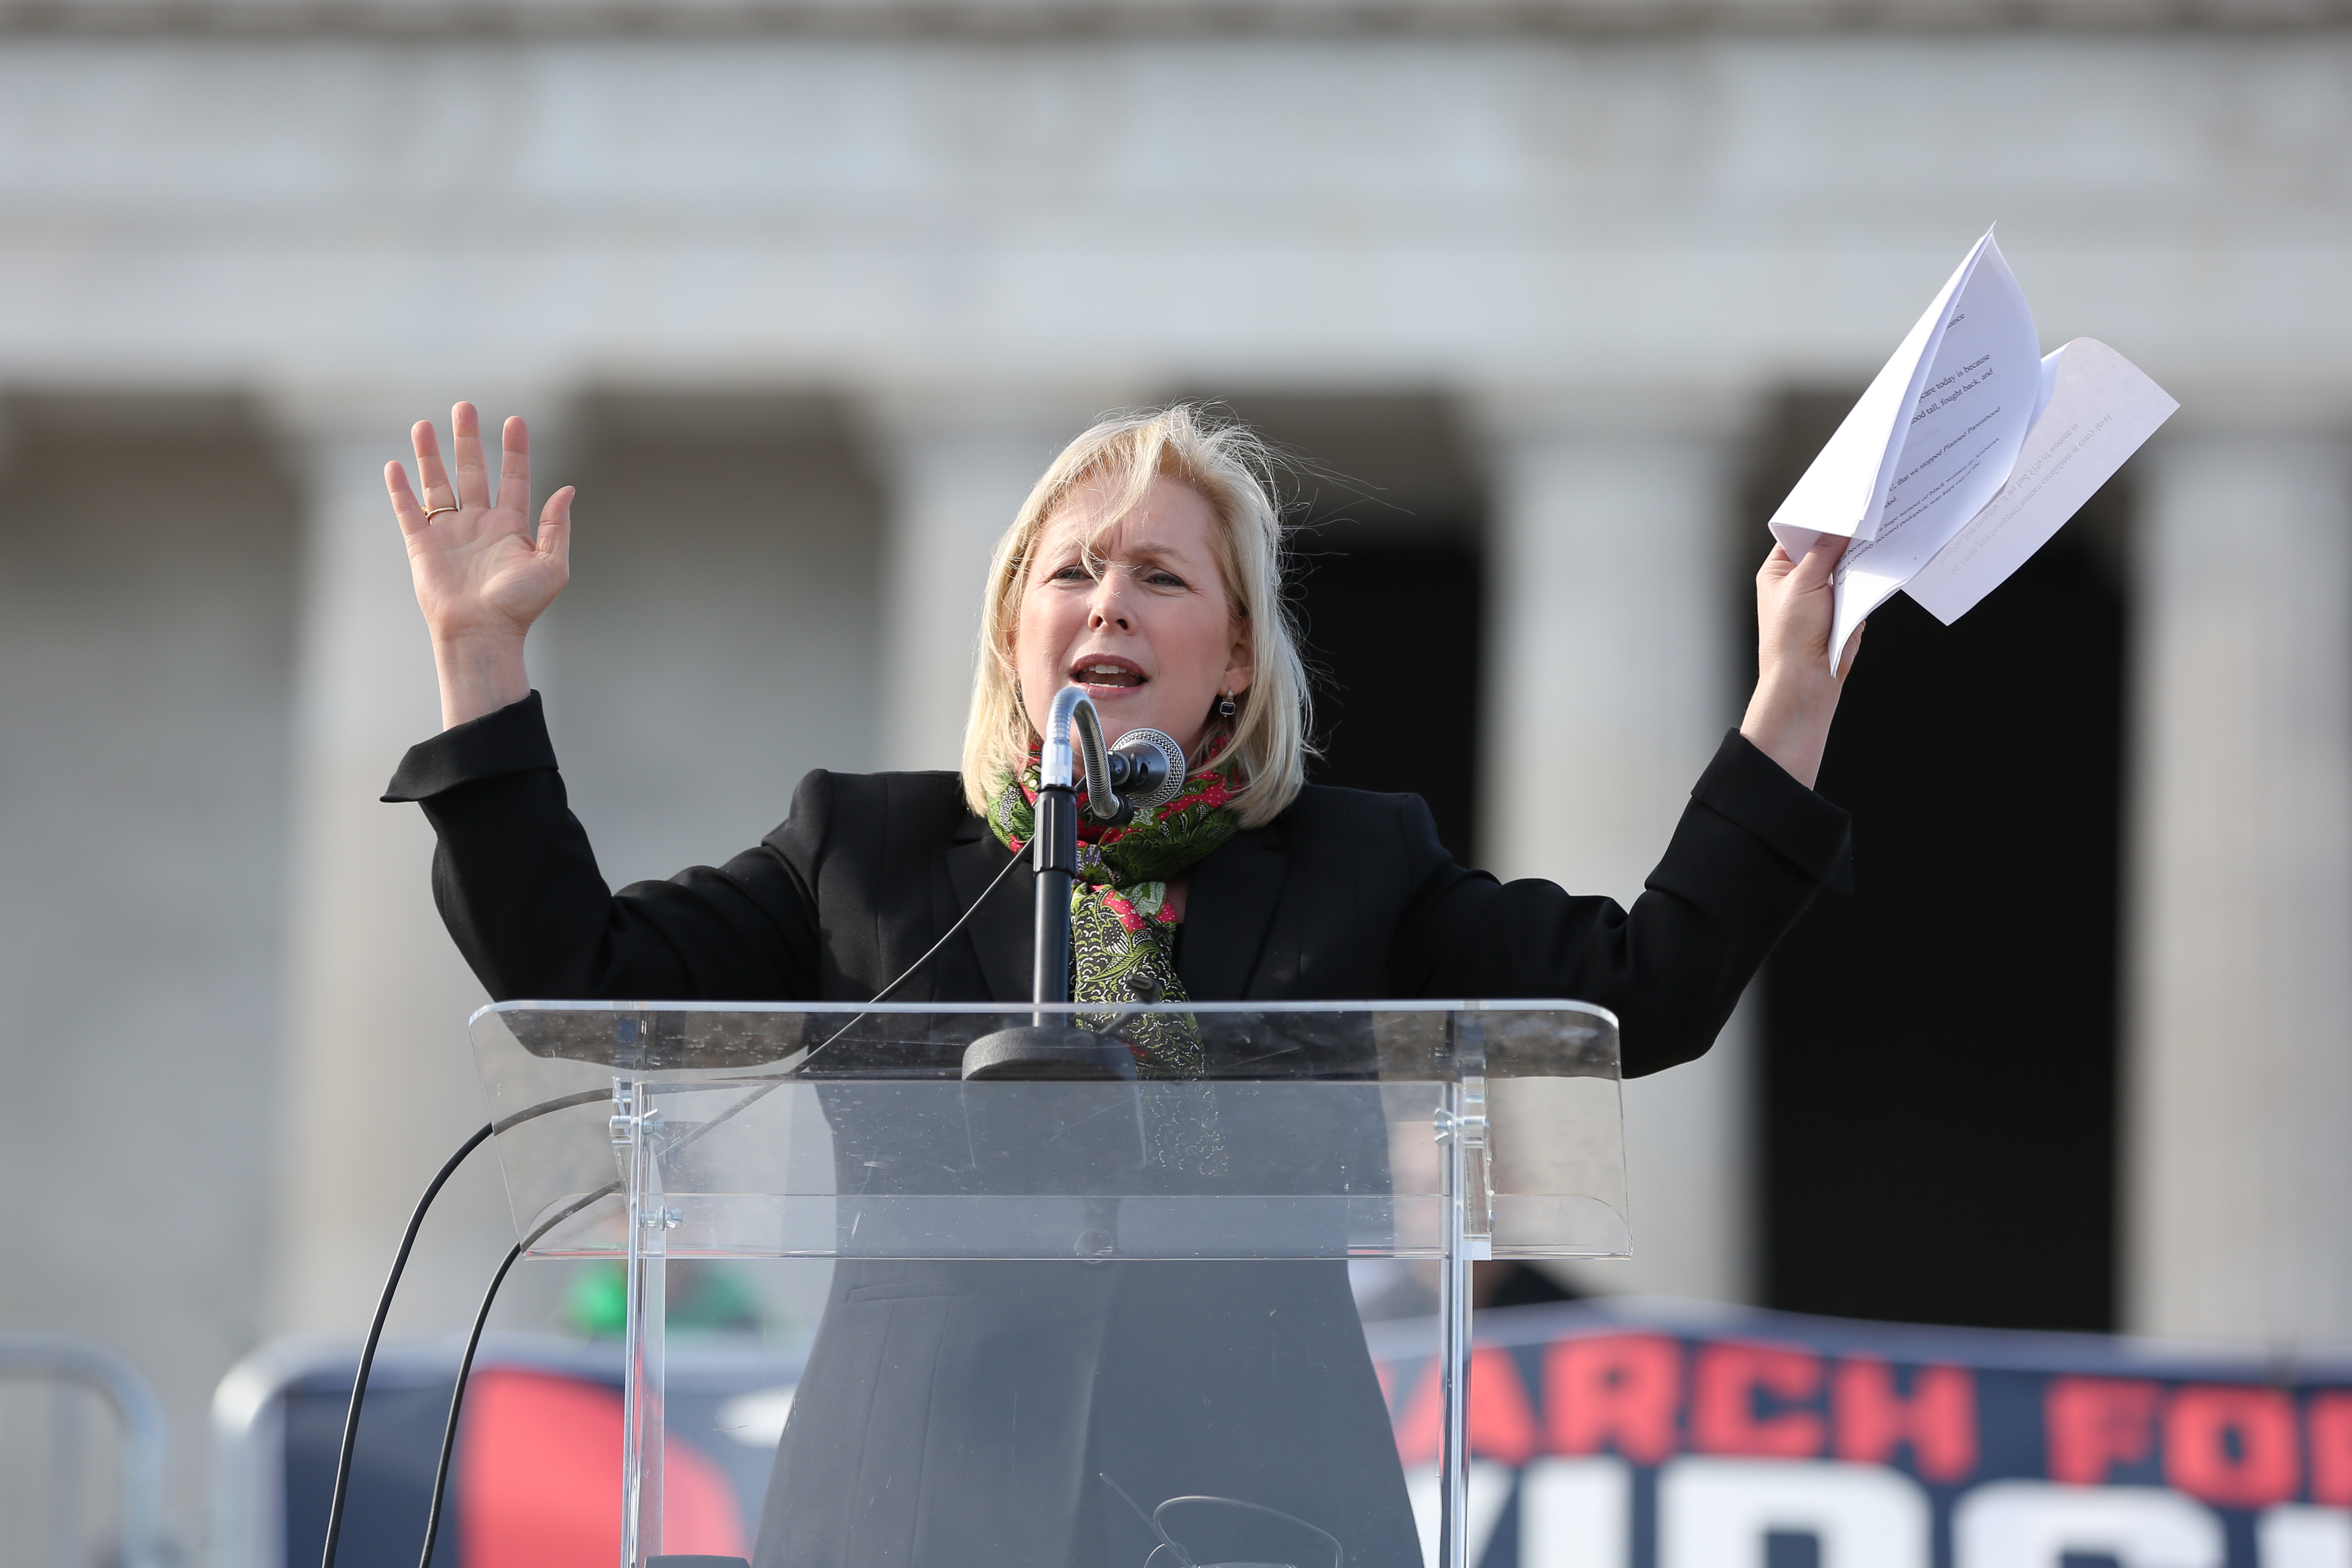 Senators Kristen Gillibrand, Tim Kaine, Congresswoman Nancy Pelosi and Democratic politicians took the podium, although they didn't have major speaking roles in 2017. (Amanda Andrade-Rhoades/DC Refined)